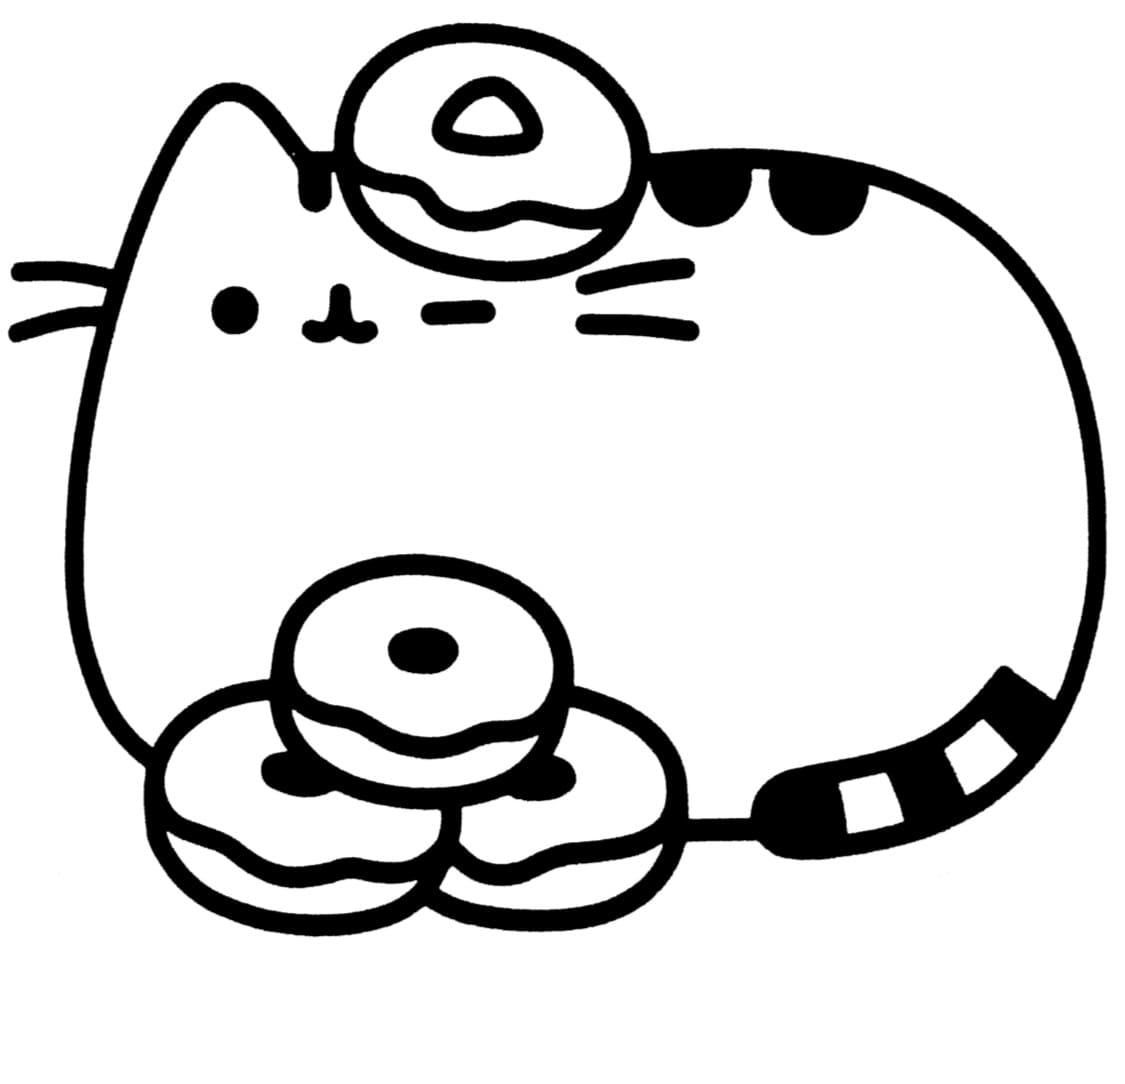 18 Coloring Page Pusheen Pusheen Coloring Pages Cat Coloring Page Cute Coloring Pages